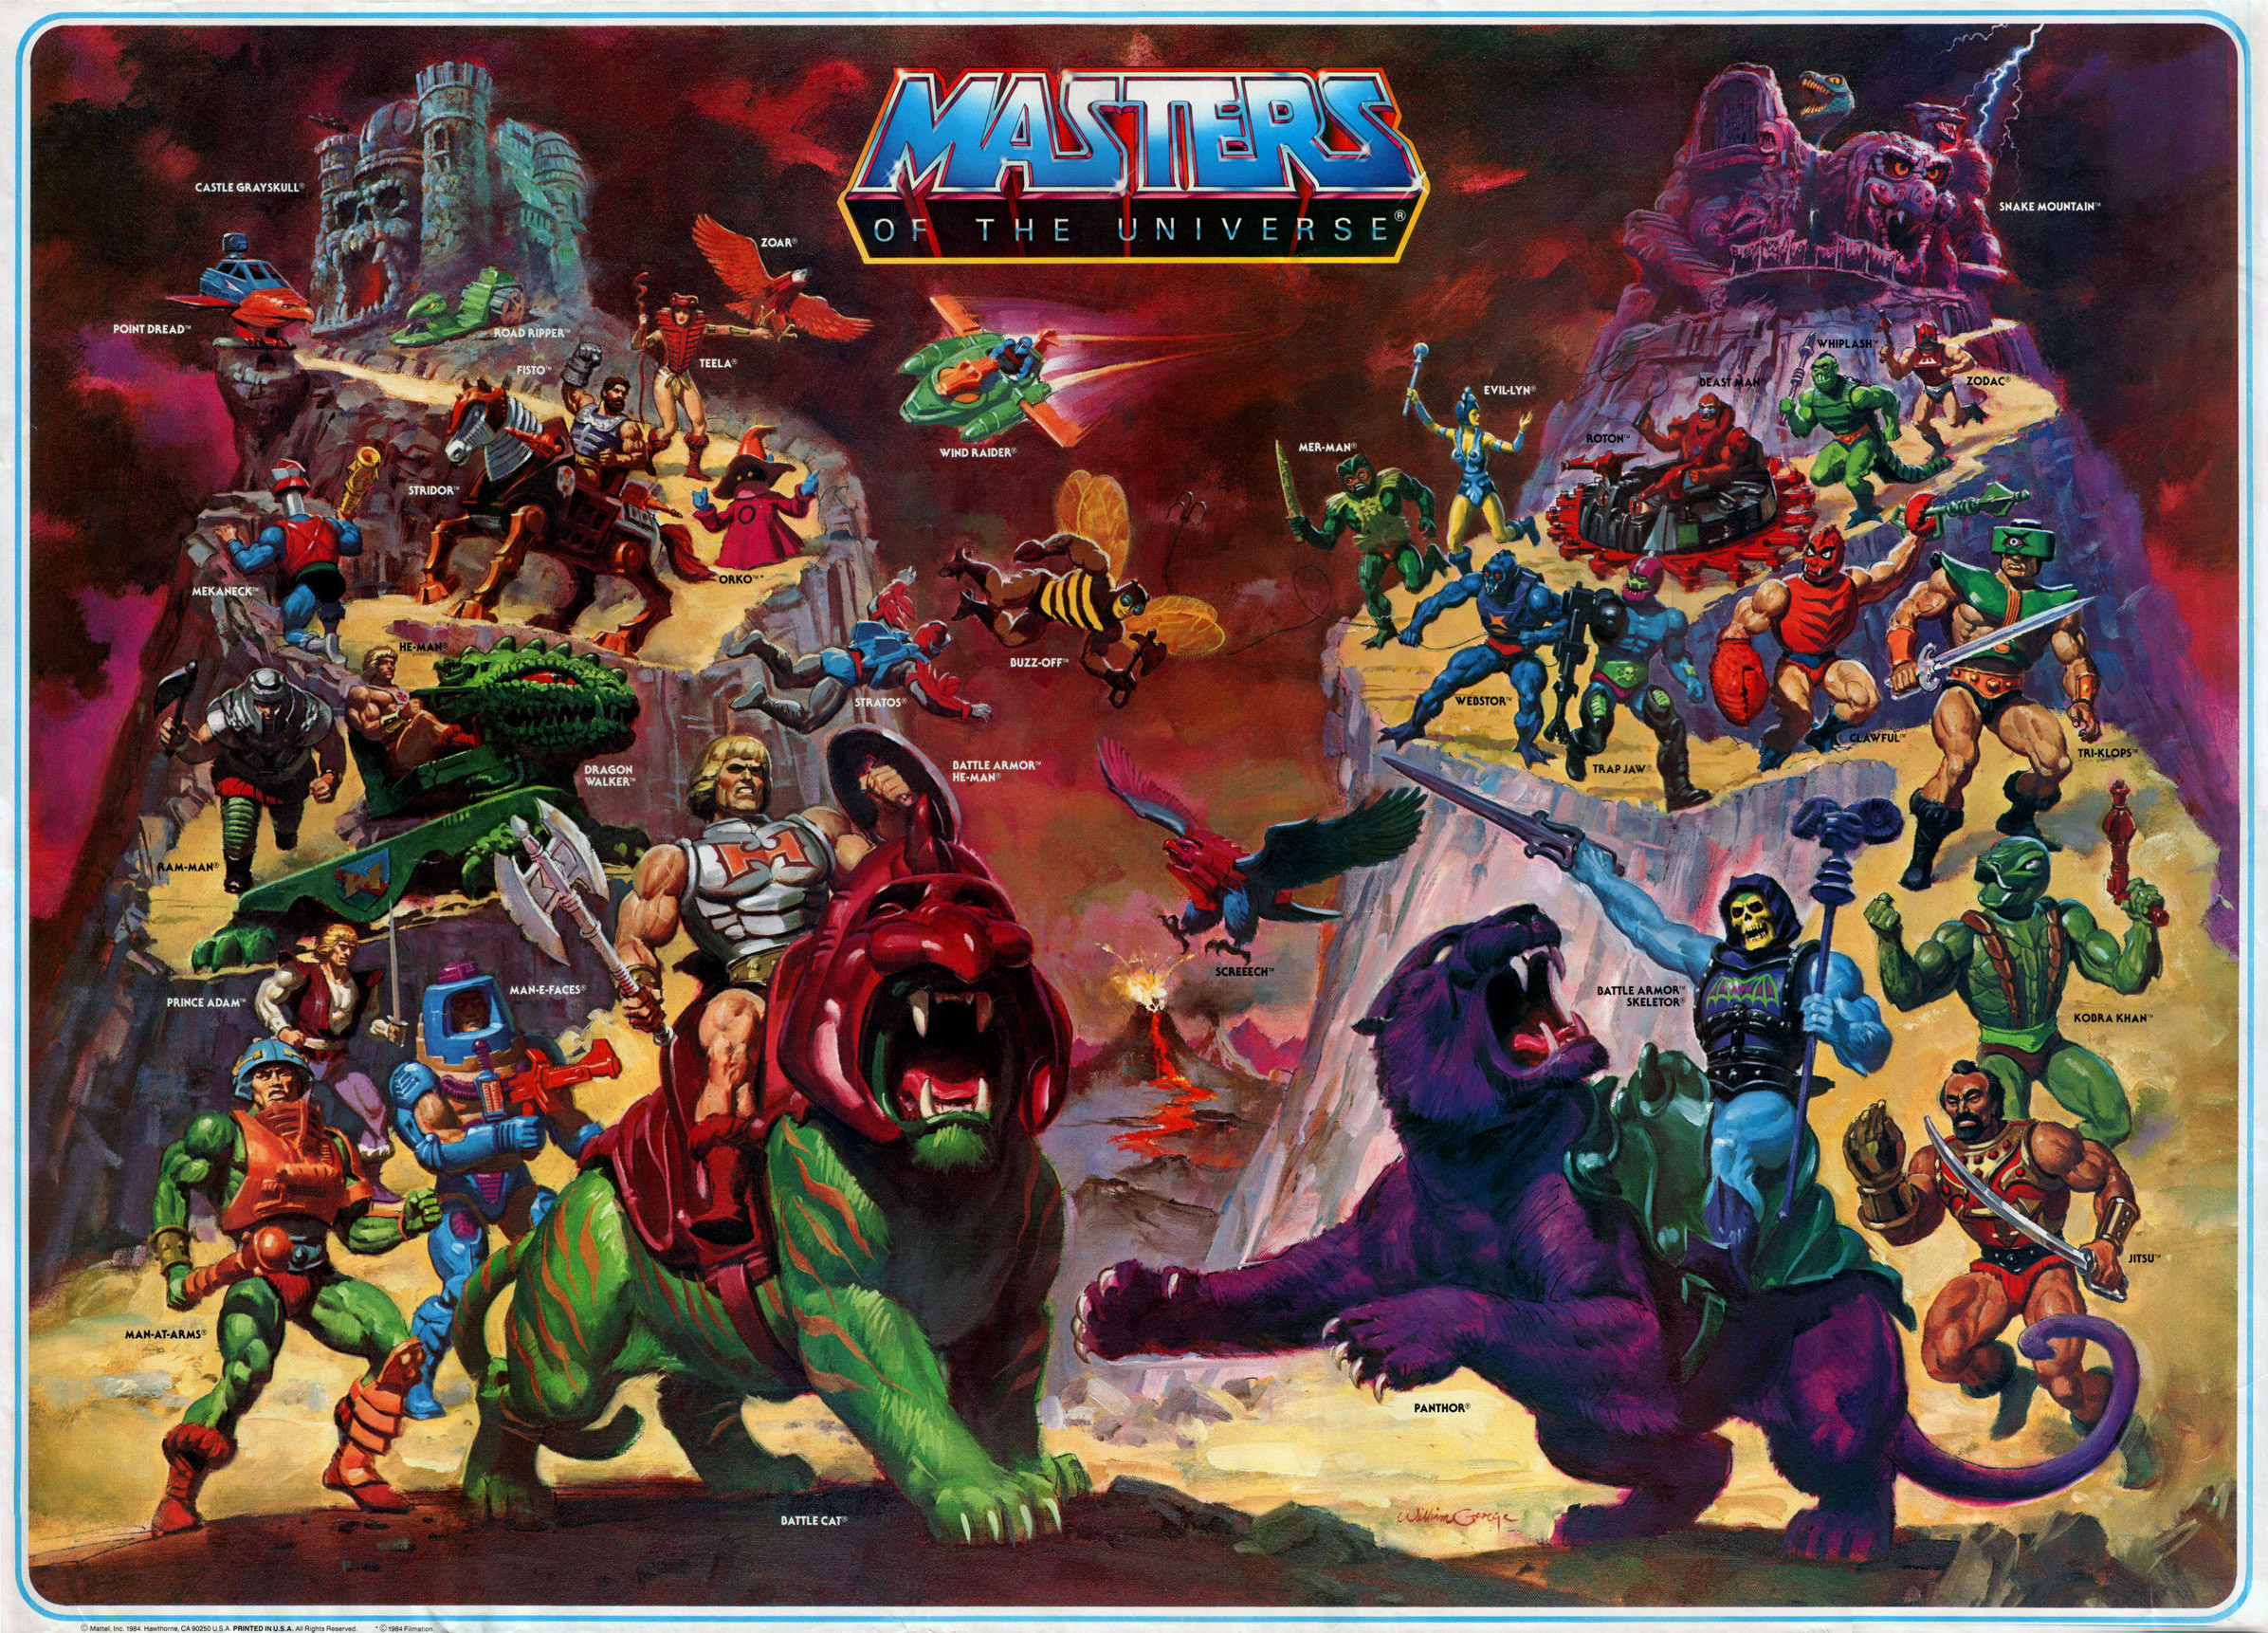 Res: 2392x1722, He-man And The Masters Of The Universe comics x wallpaper |  |  85004 | WallpaperUP